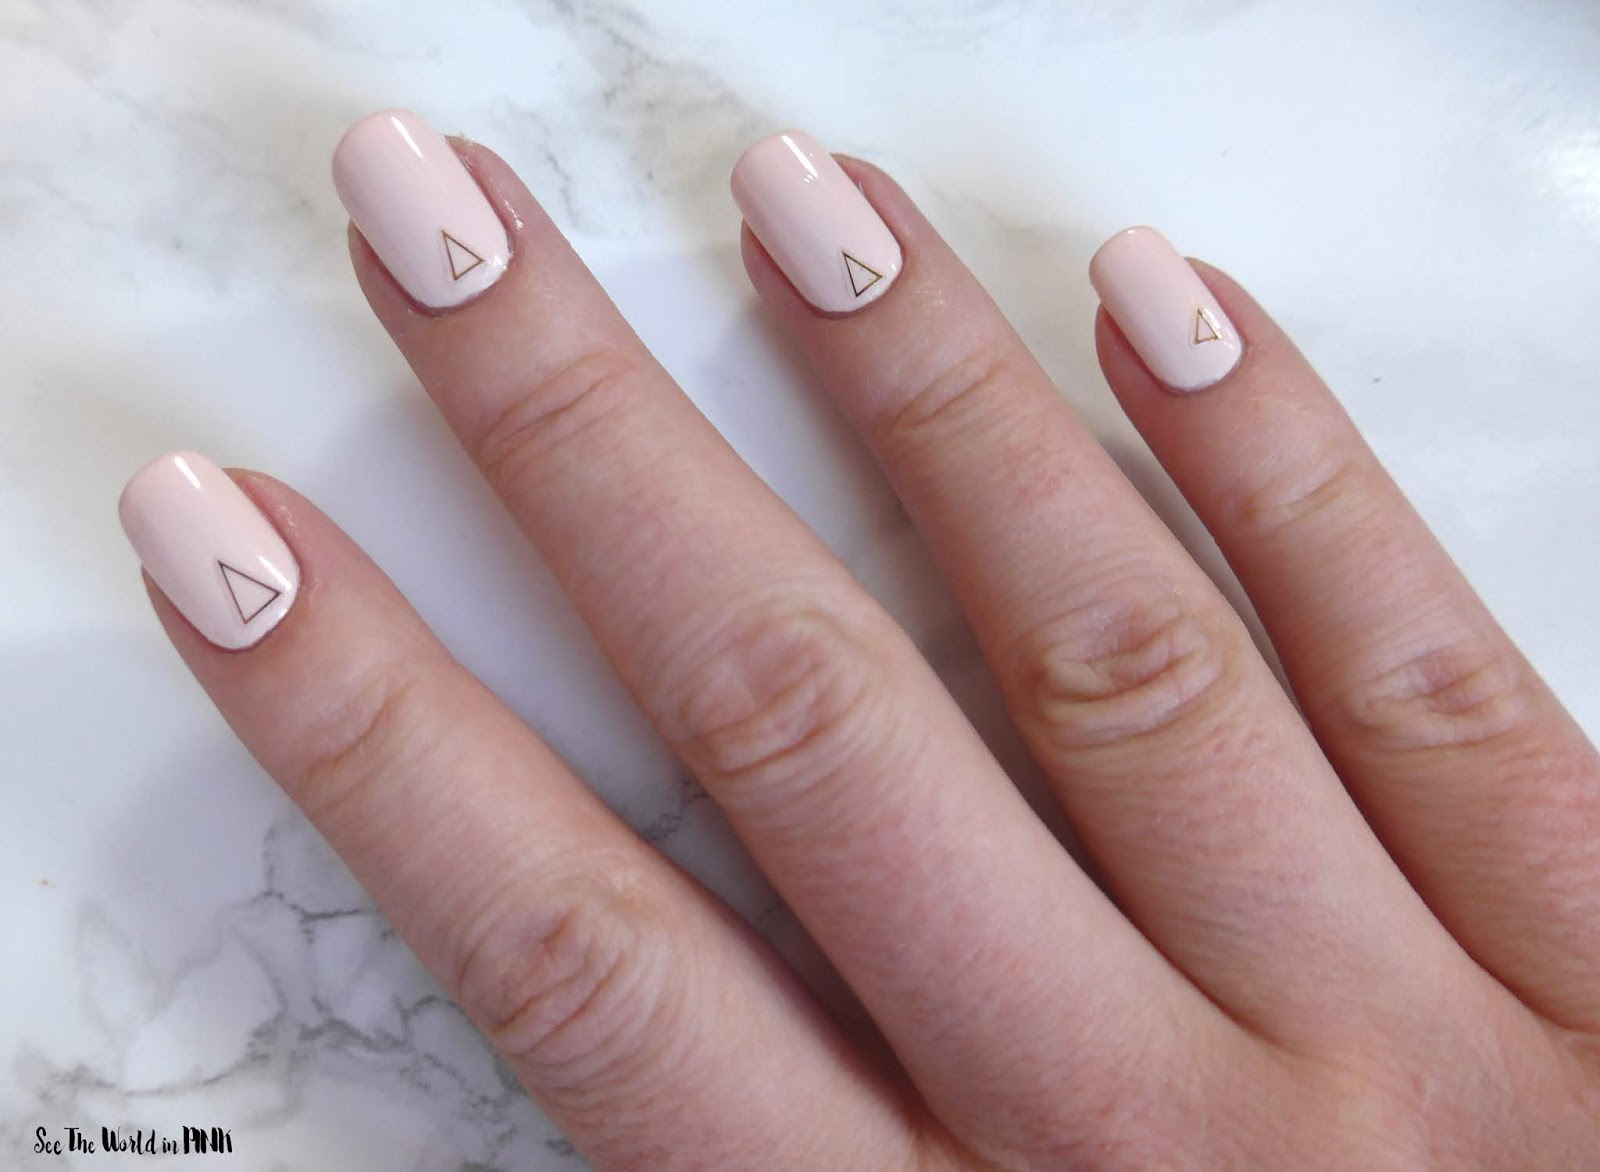 Manicure Monday - Simple Nude Nails